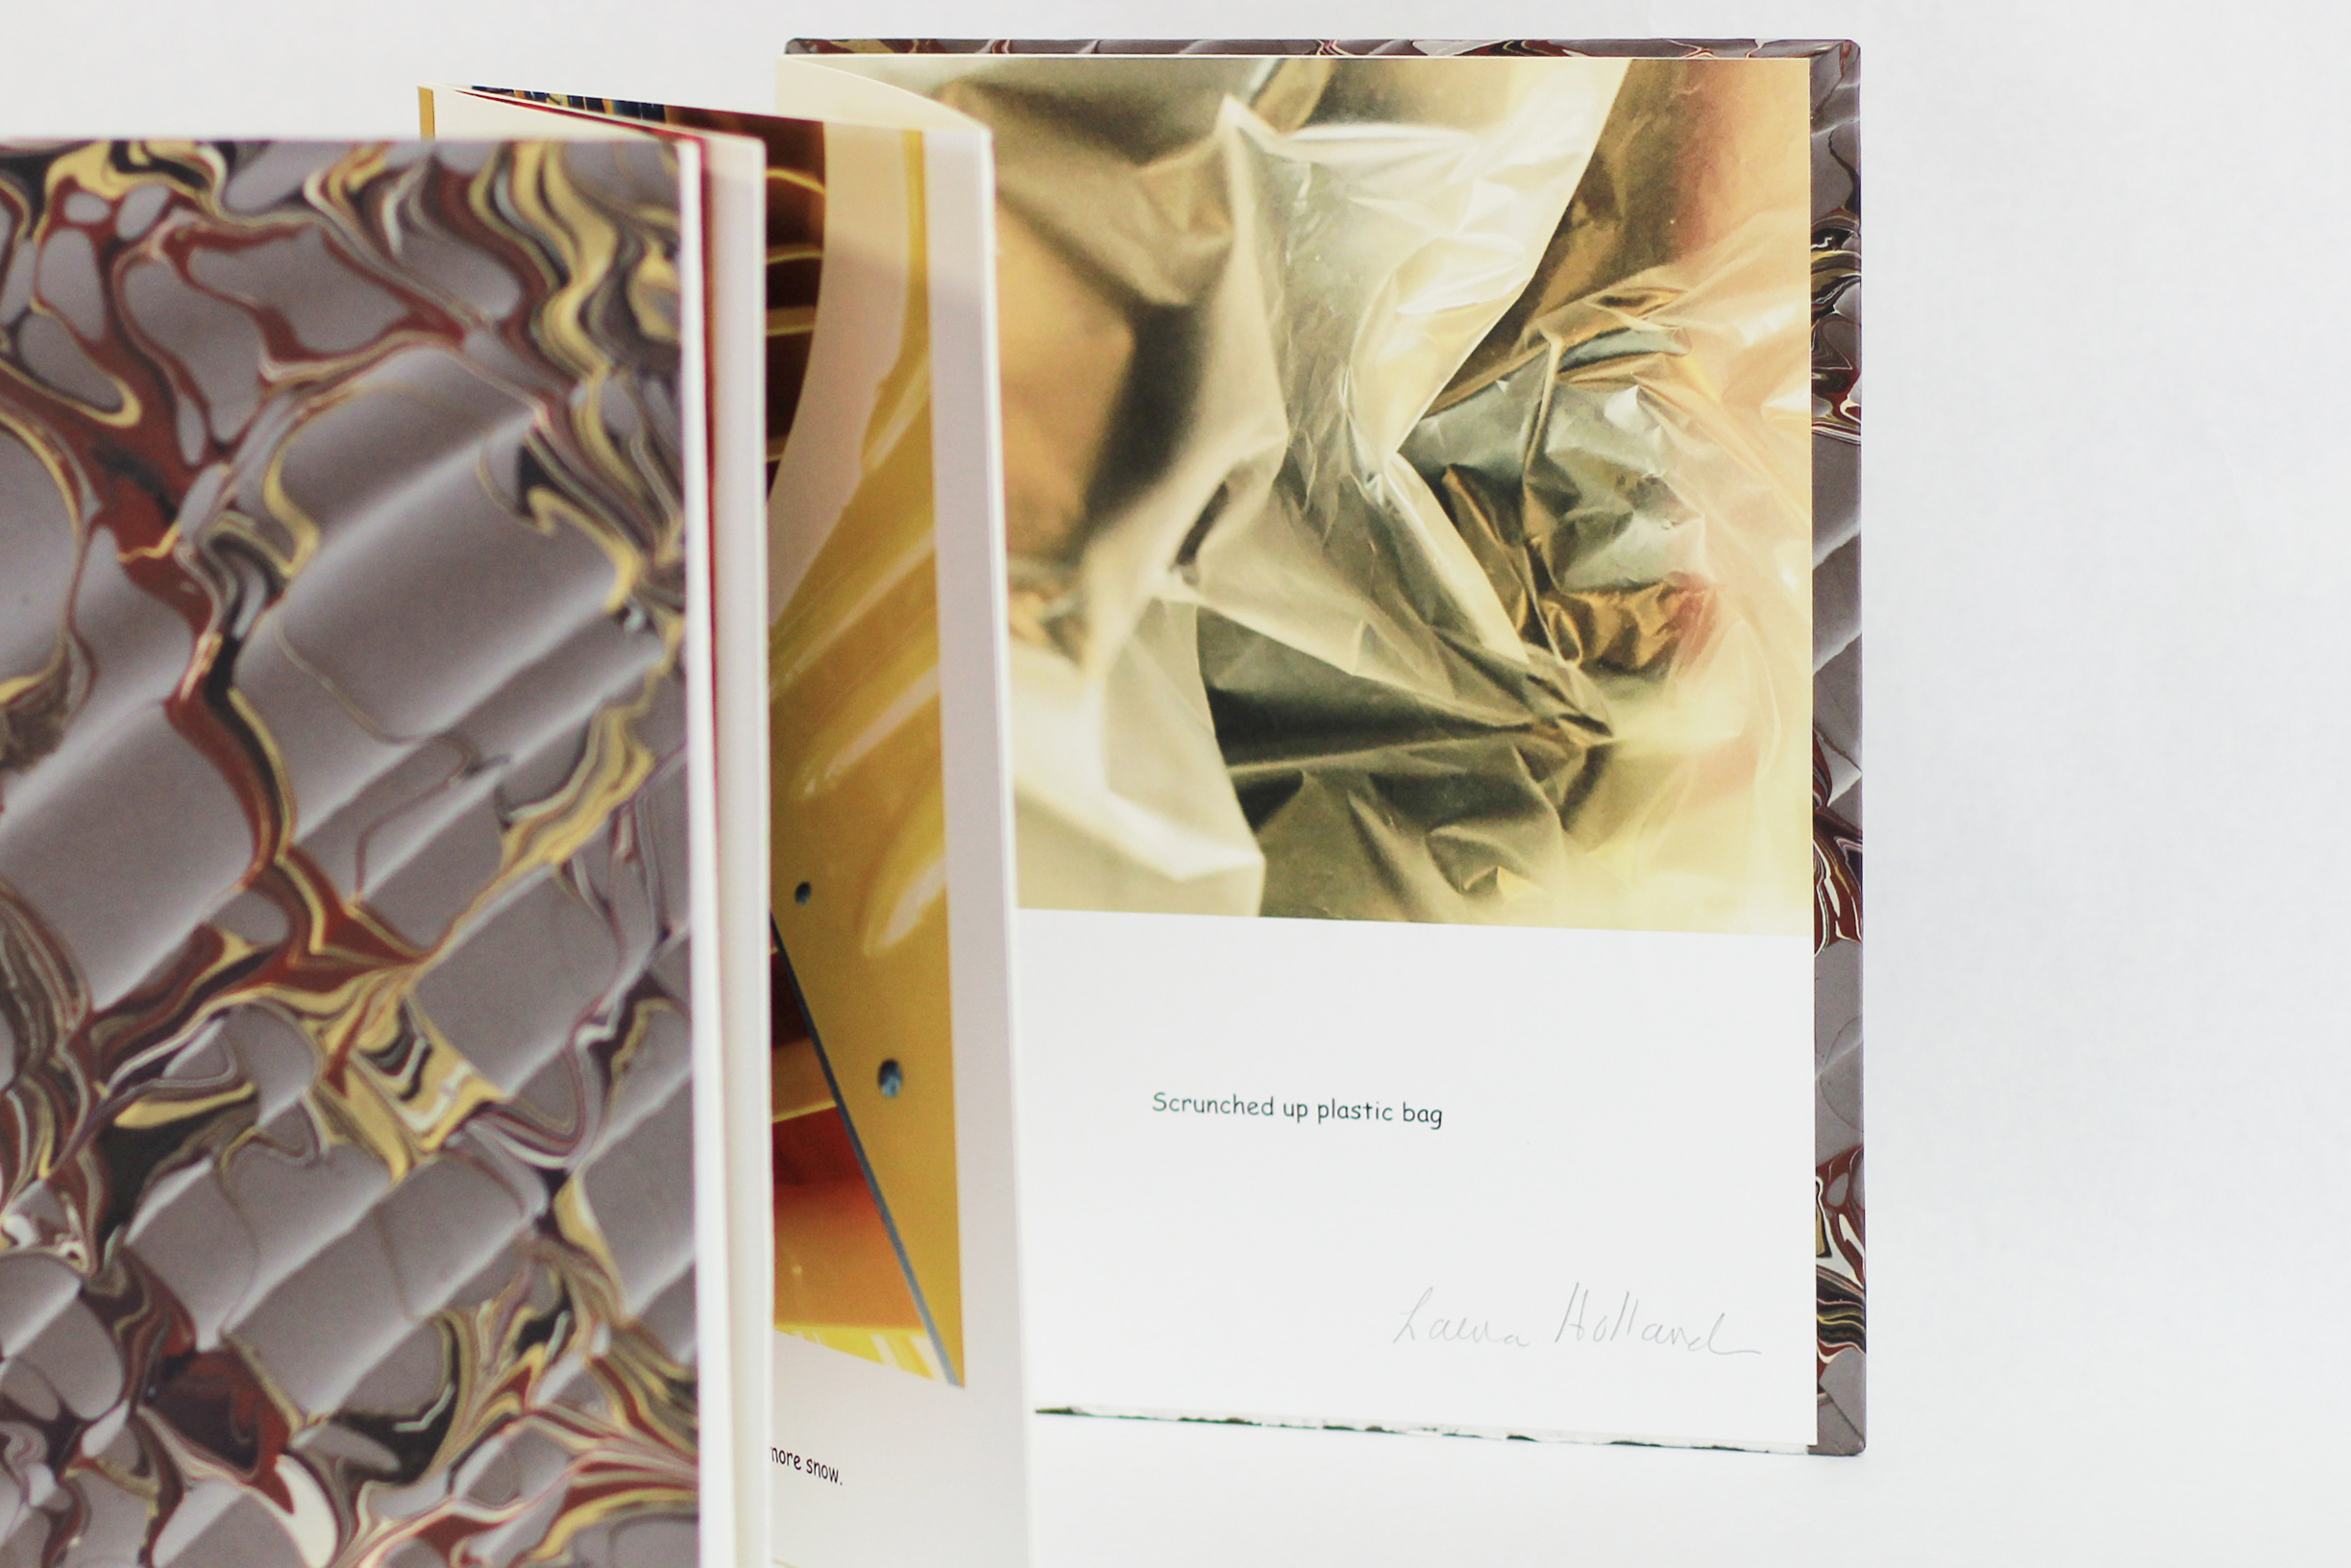 """Laura Holland, """"Self-Portrait,"""" Photographs in 8 panel accordion book, 2018, $400, Amherst MA"""